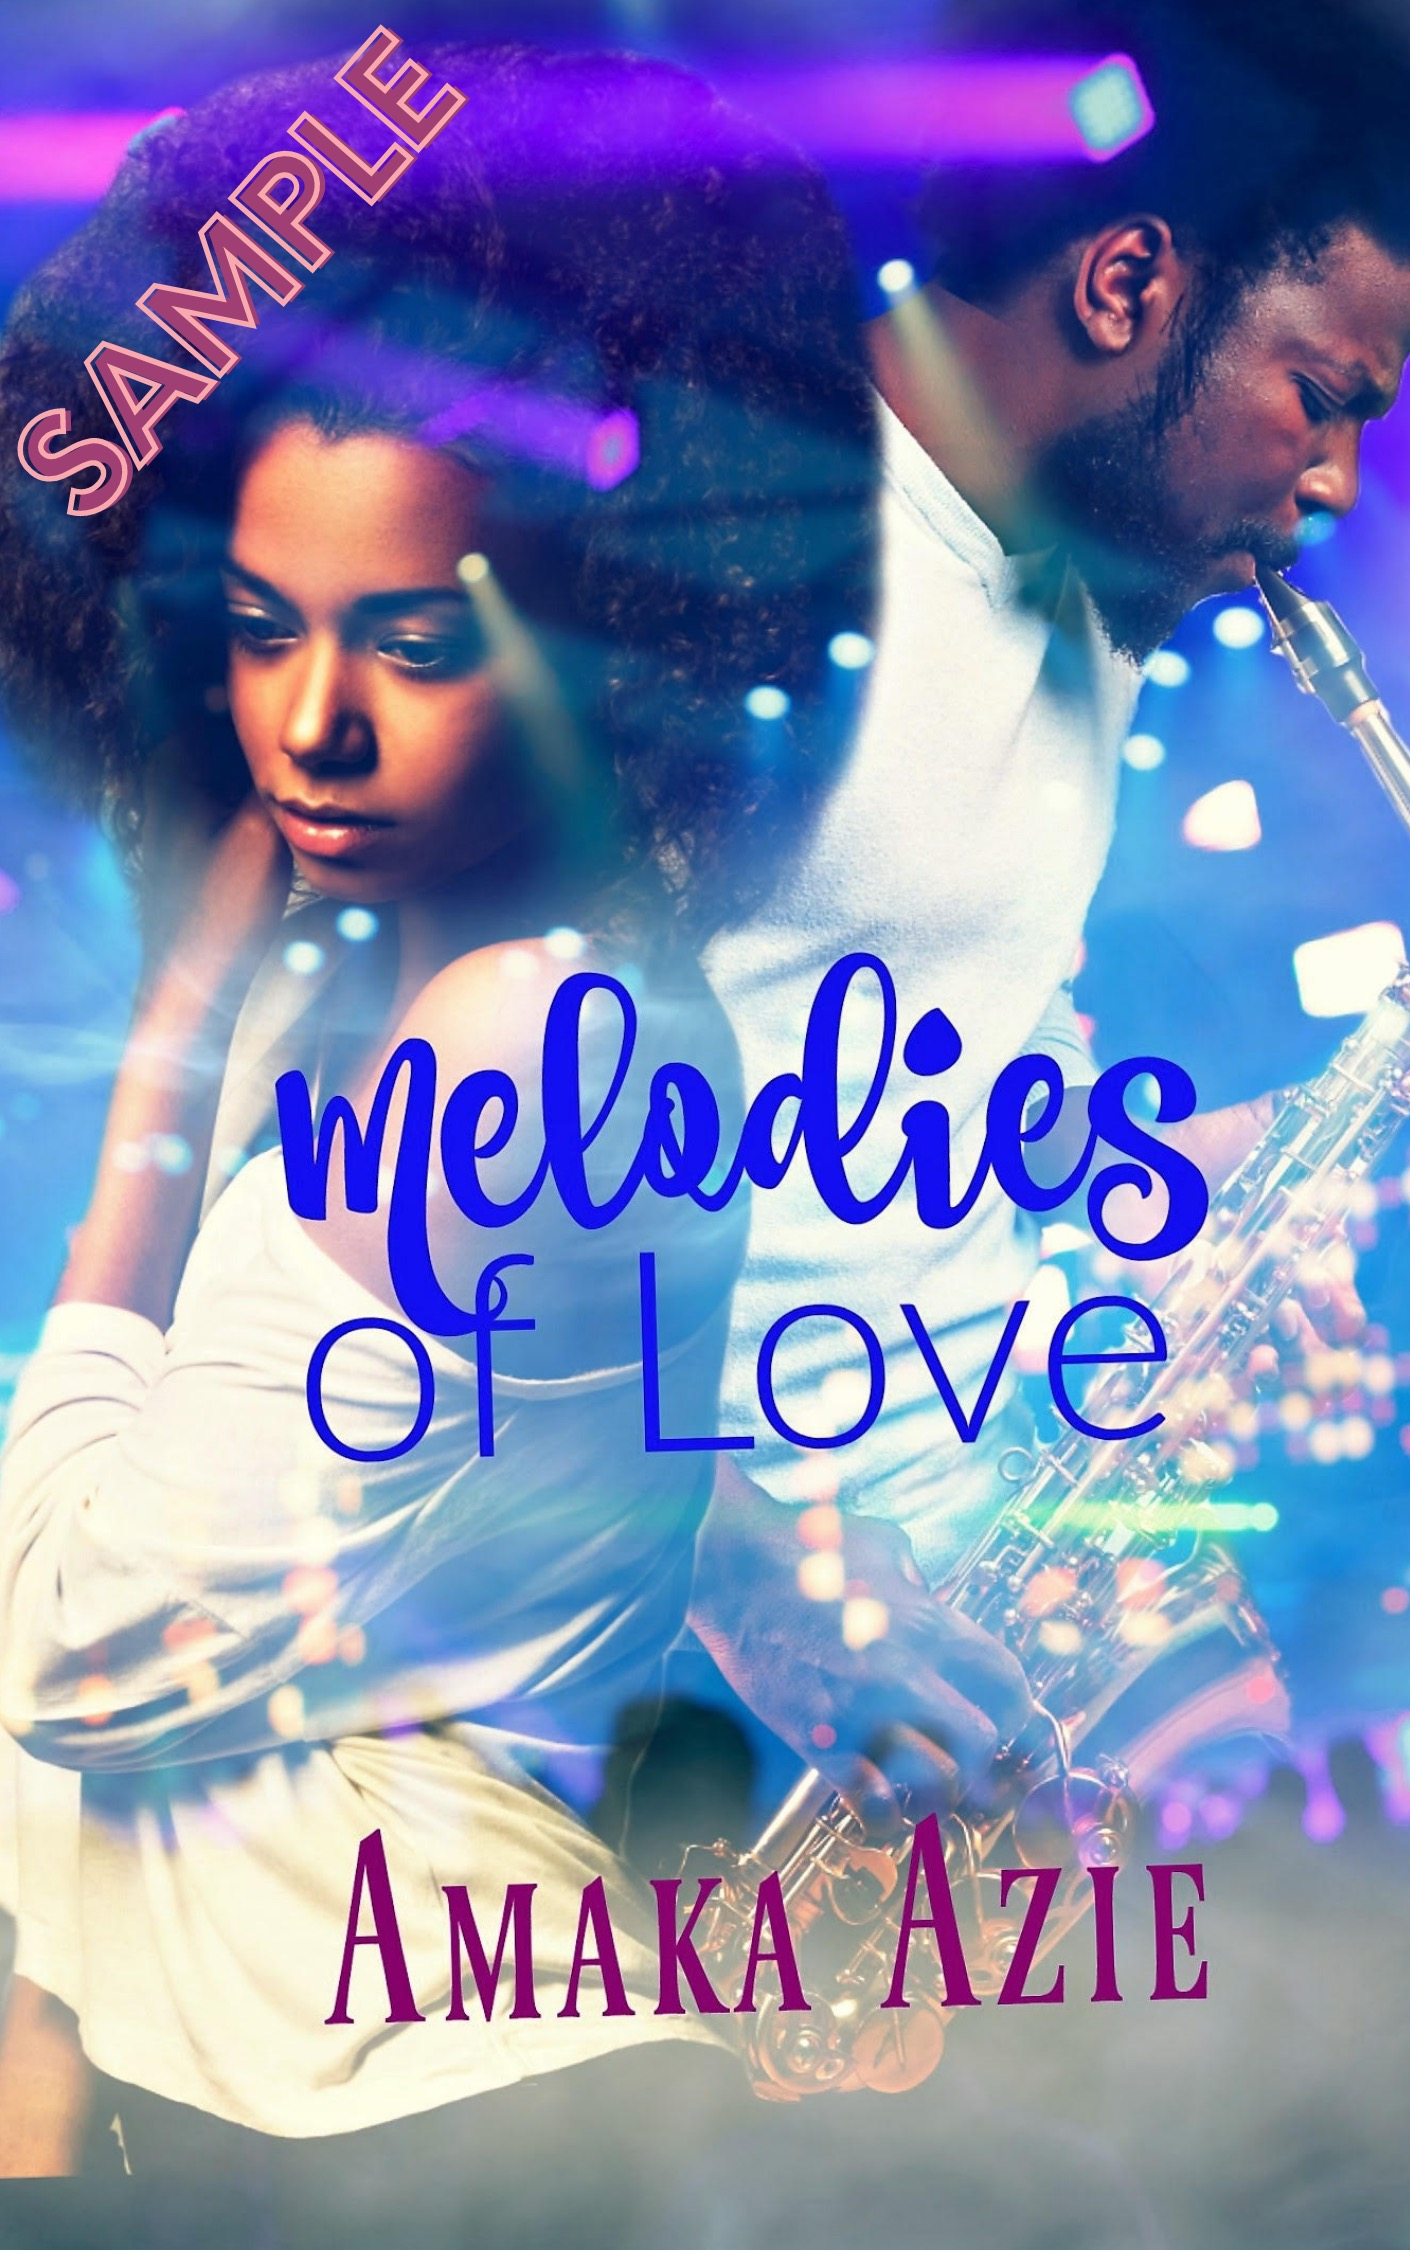 Melodies of Love (Preview)